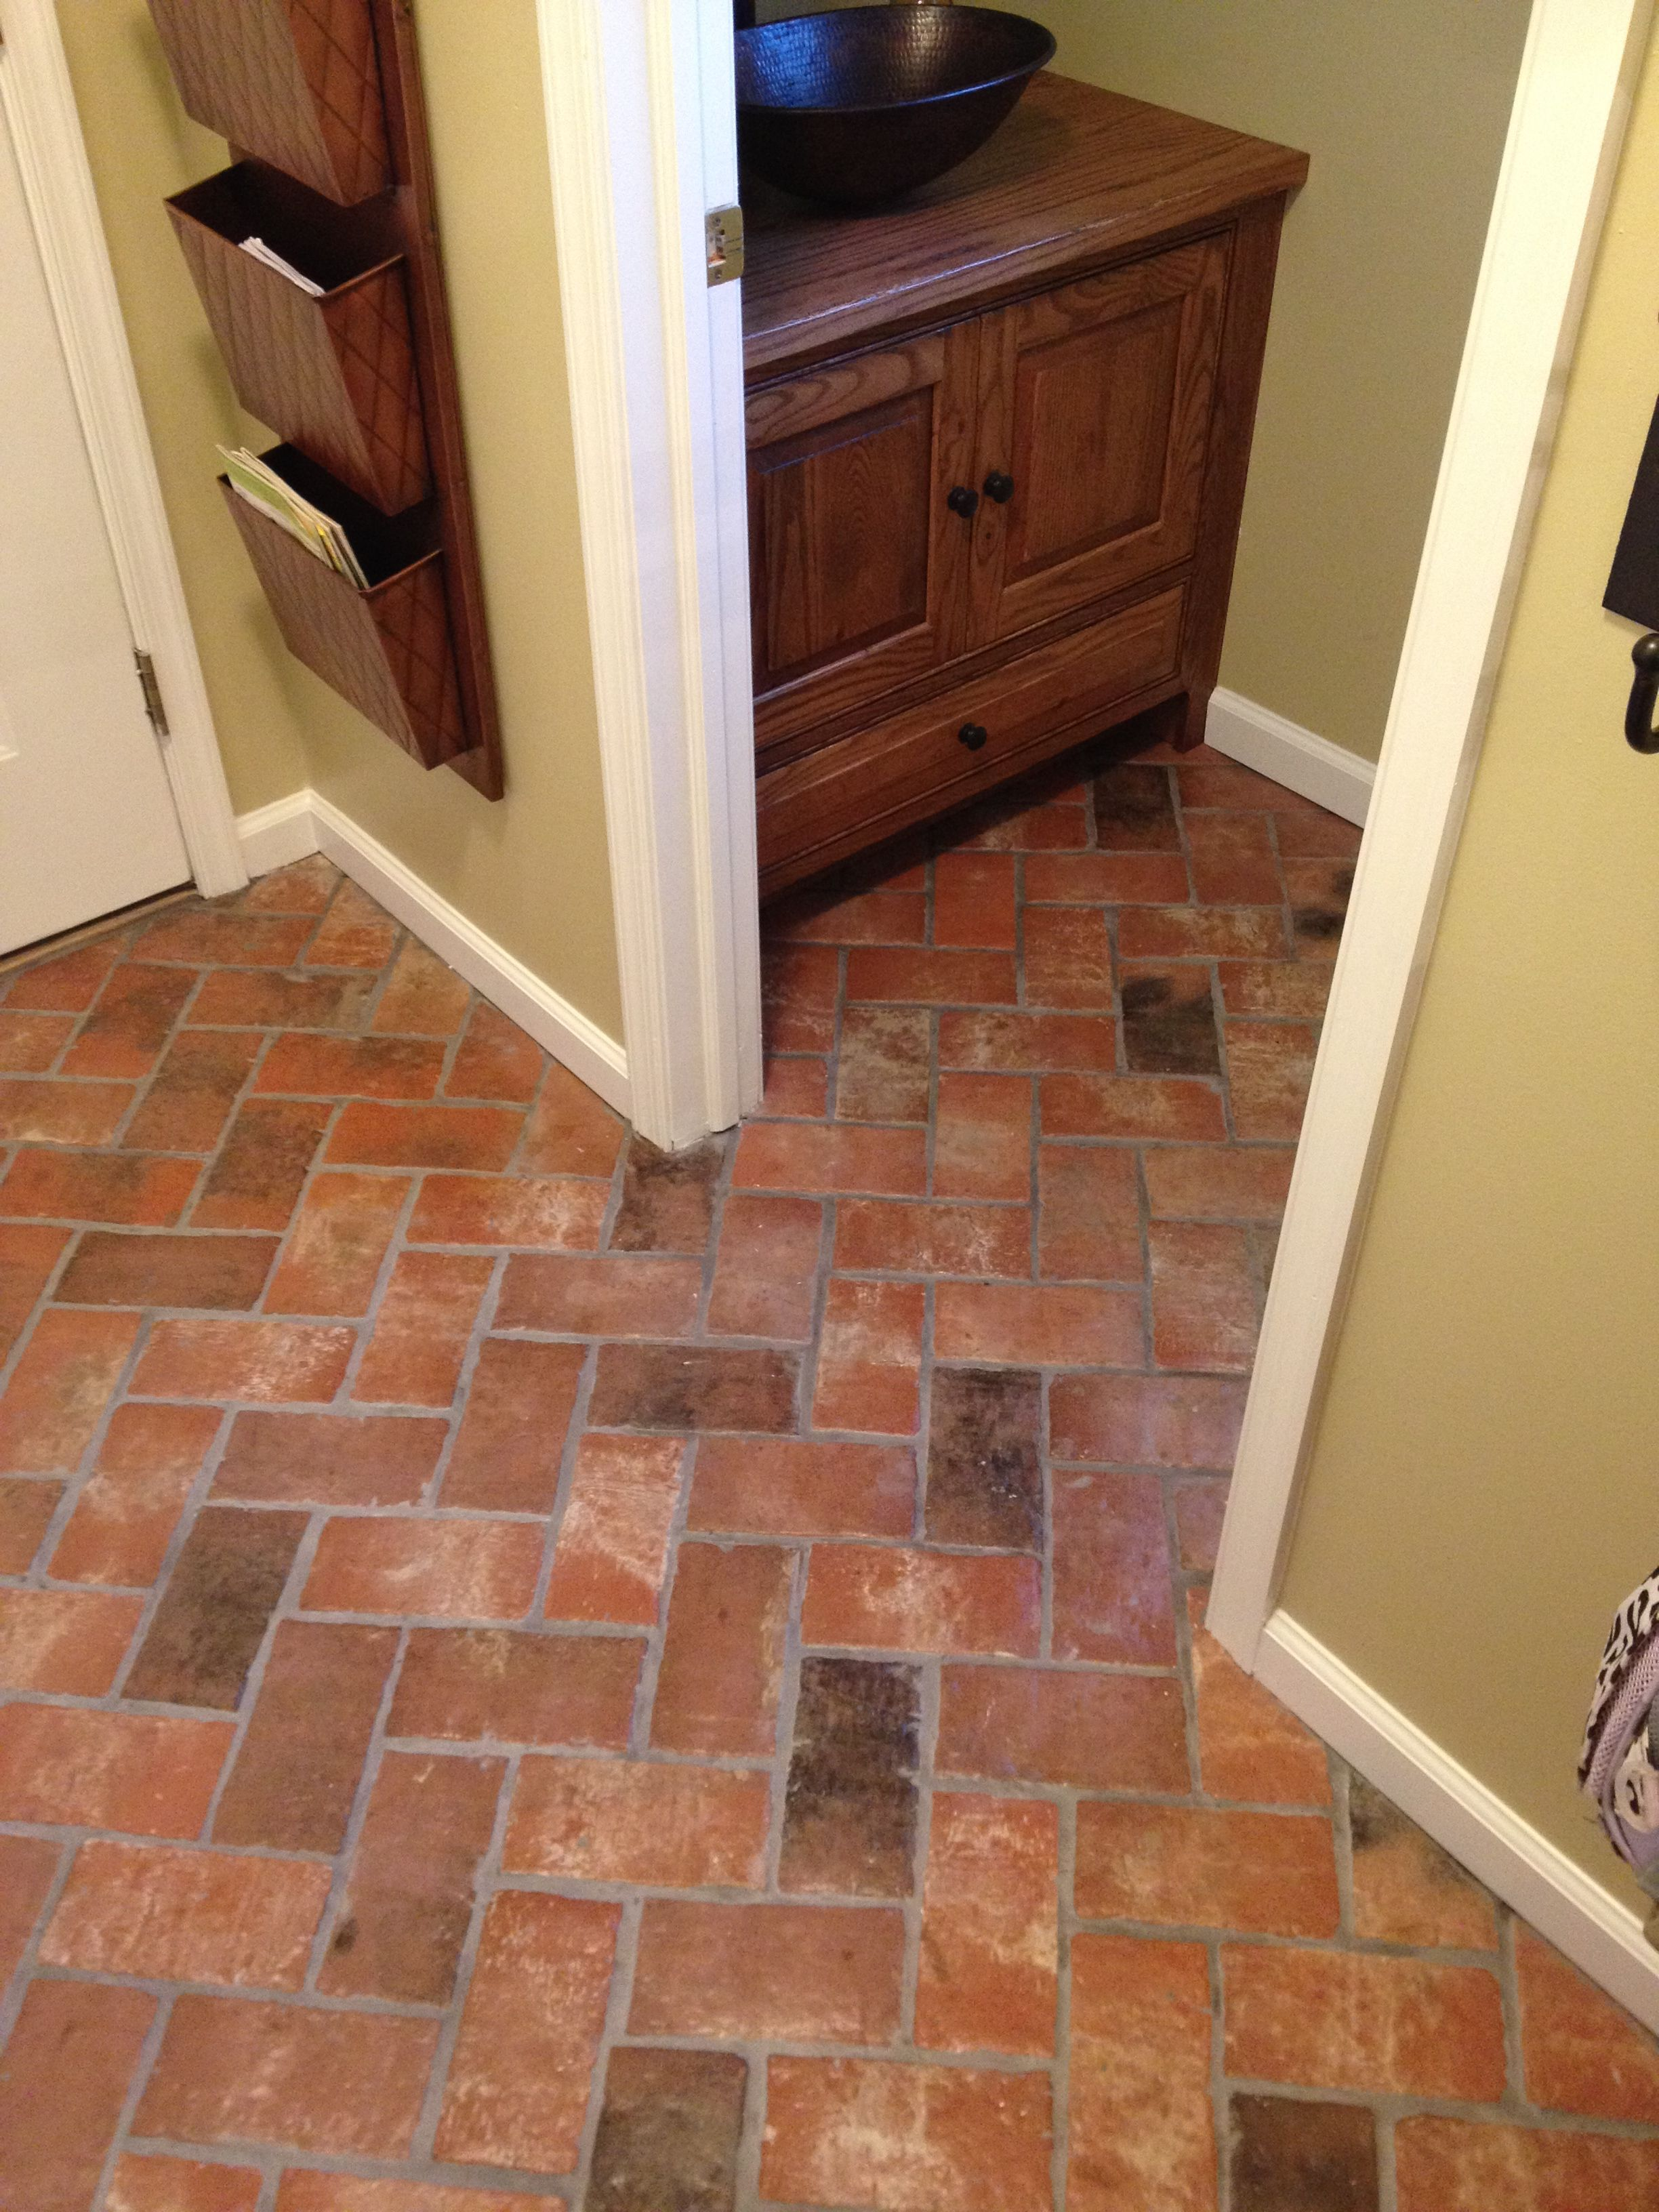 Wrights ferry brick tile entry floor marietta color mix with a thin brick color options wide selection of thin brick tile products offered in a wide selection of colors and textures dailygadgetfo Gallery